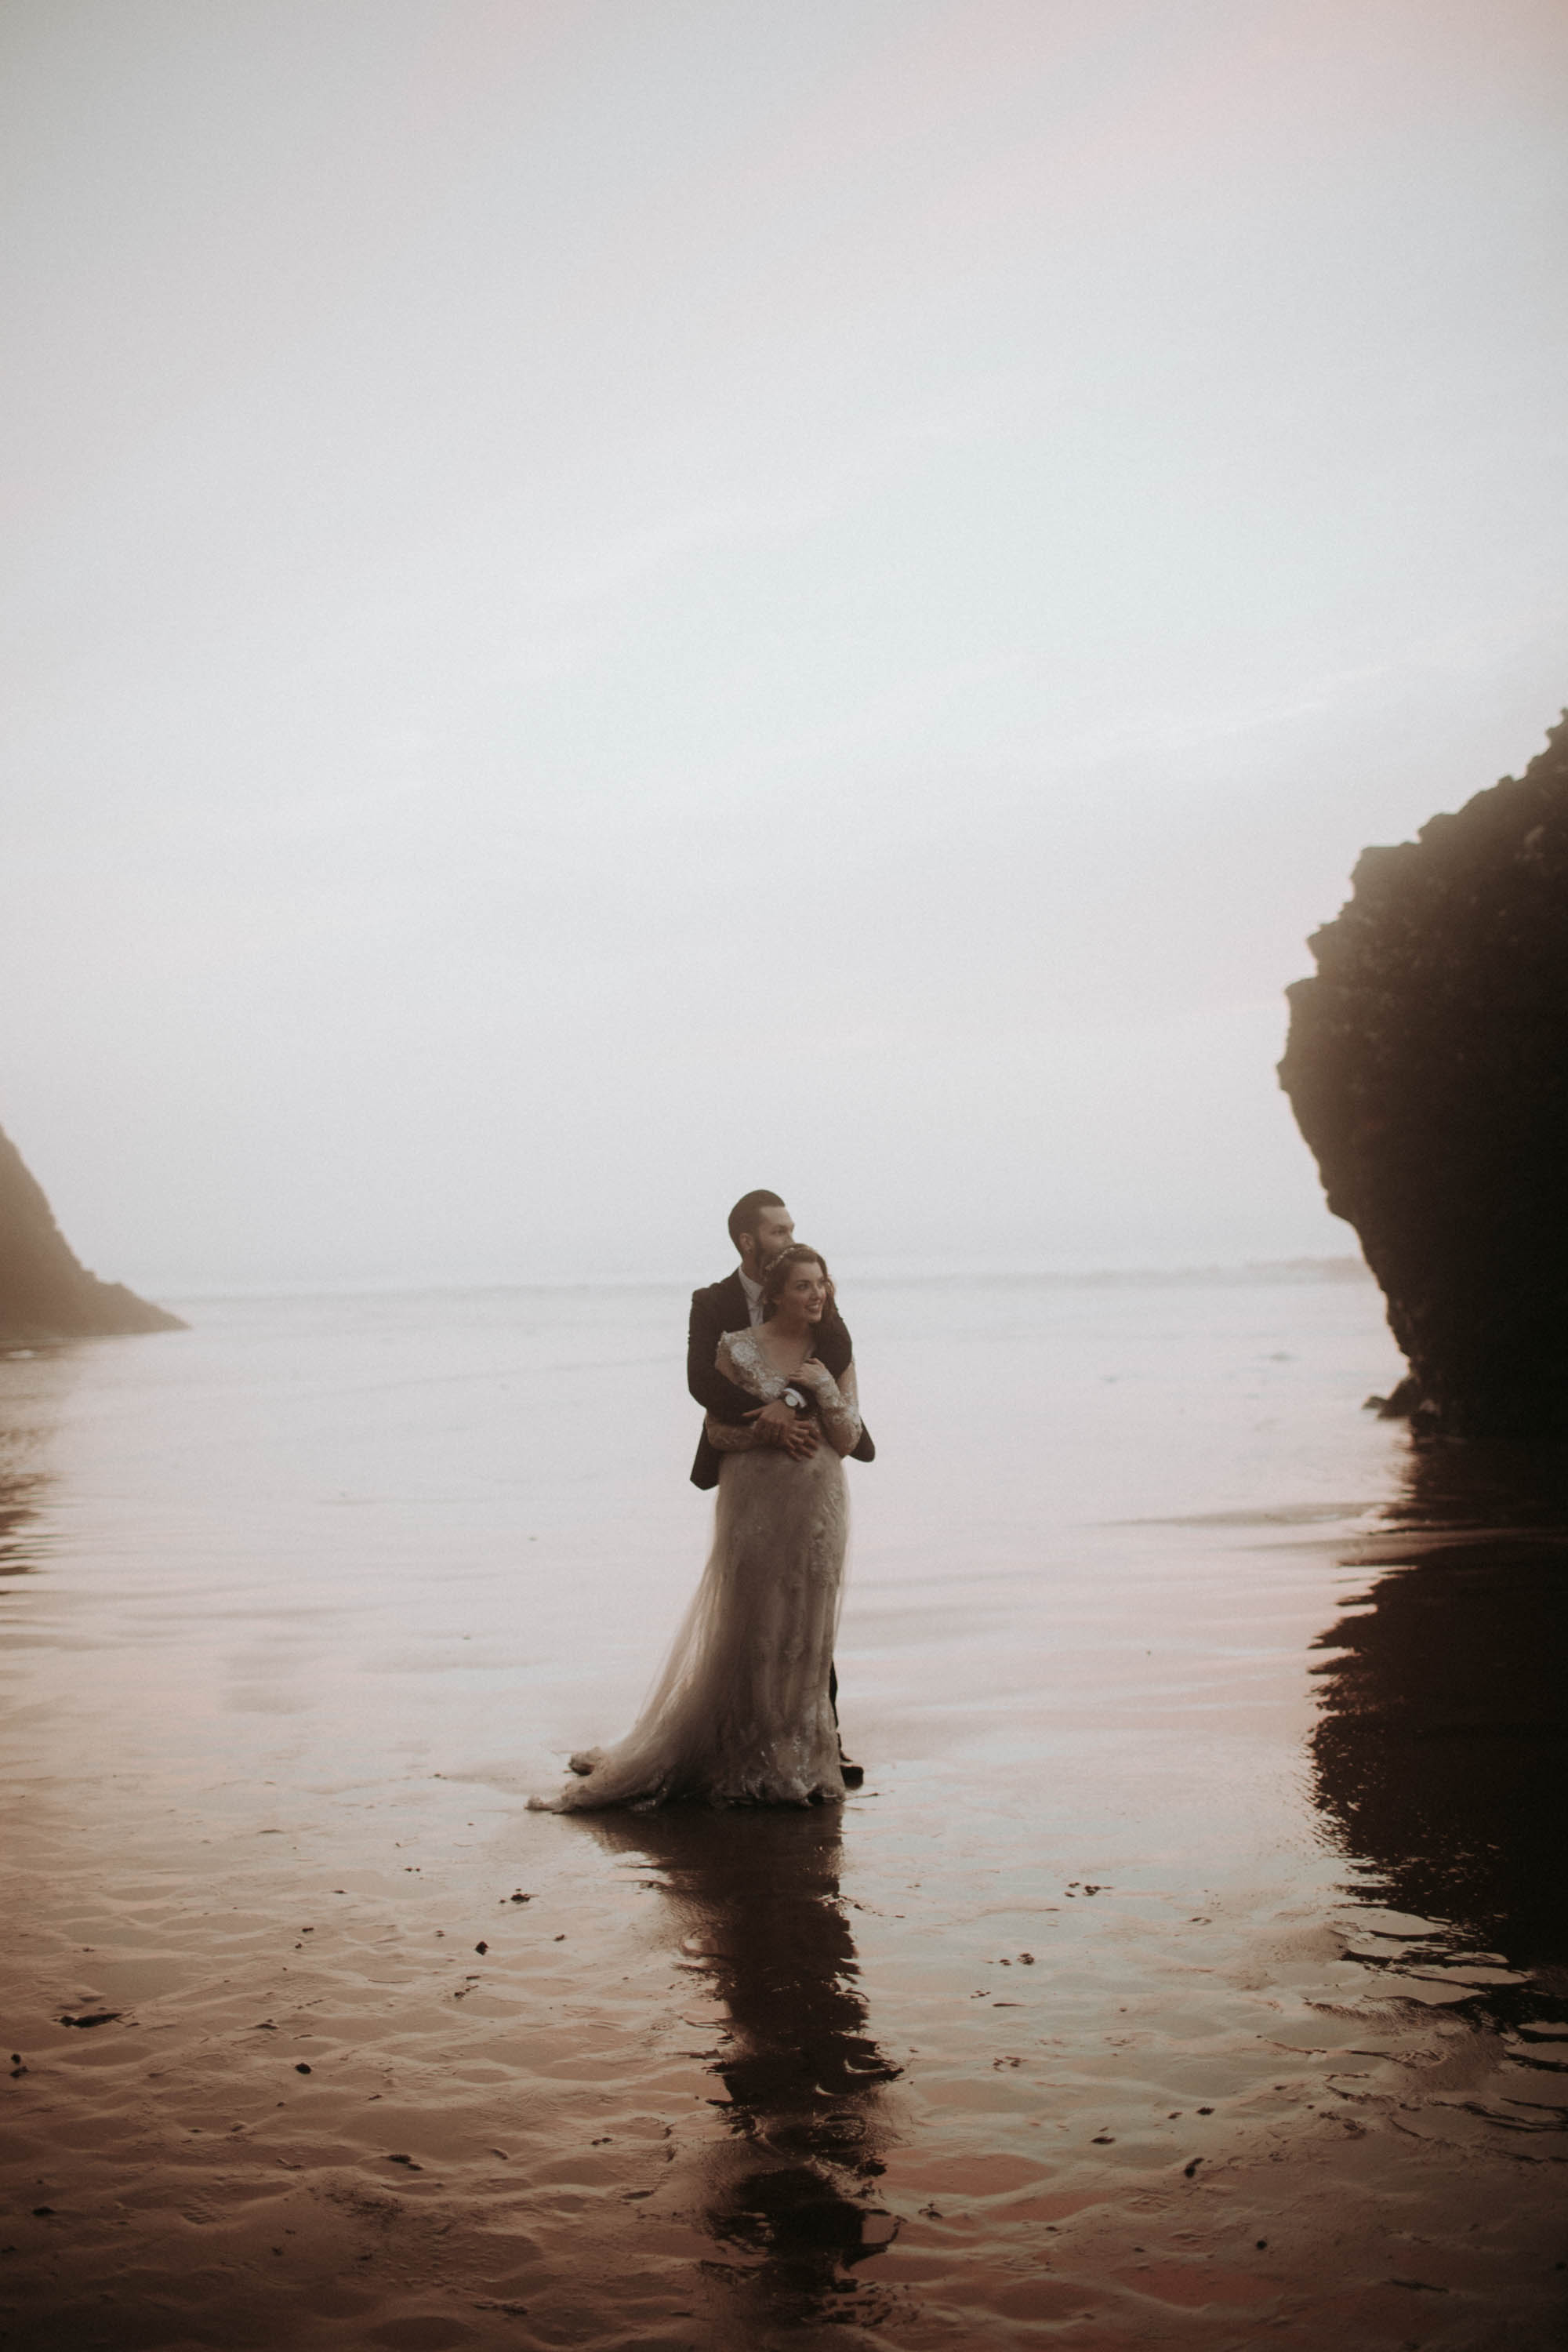 canonbeach_elopment_weddingphotographer-148.jpg